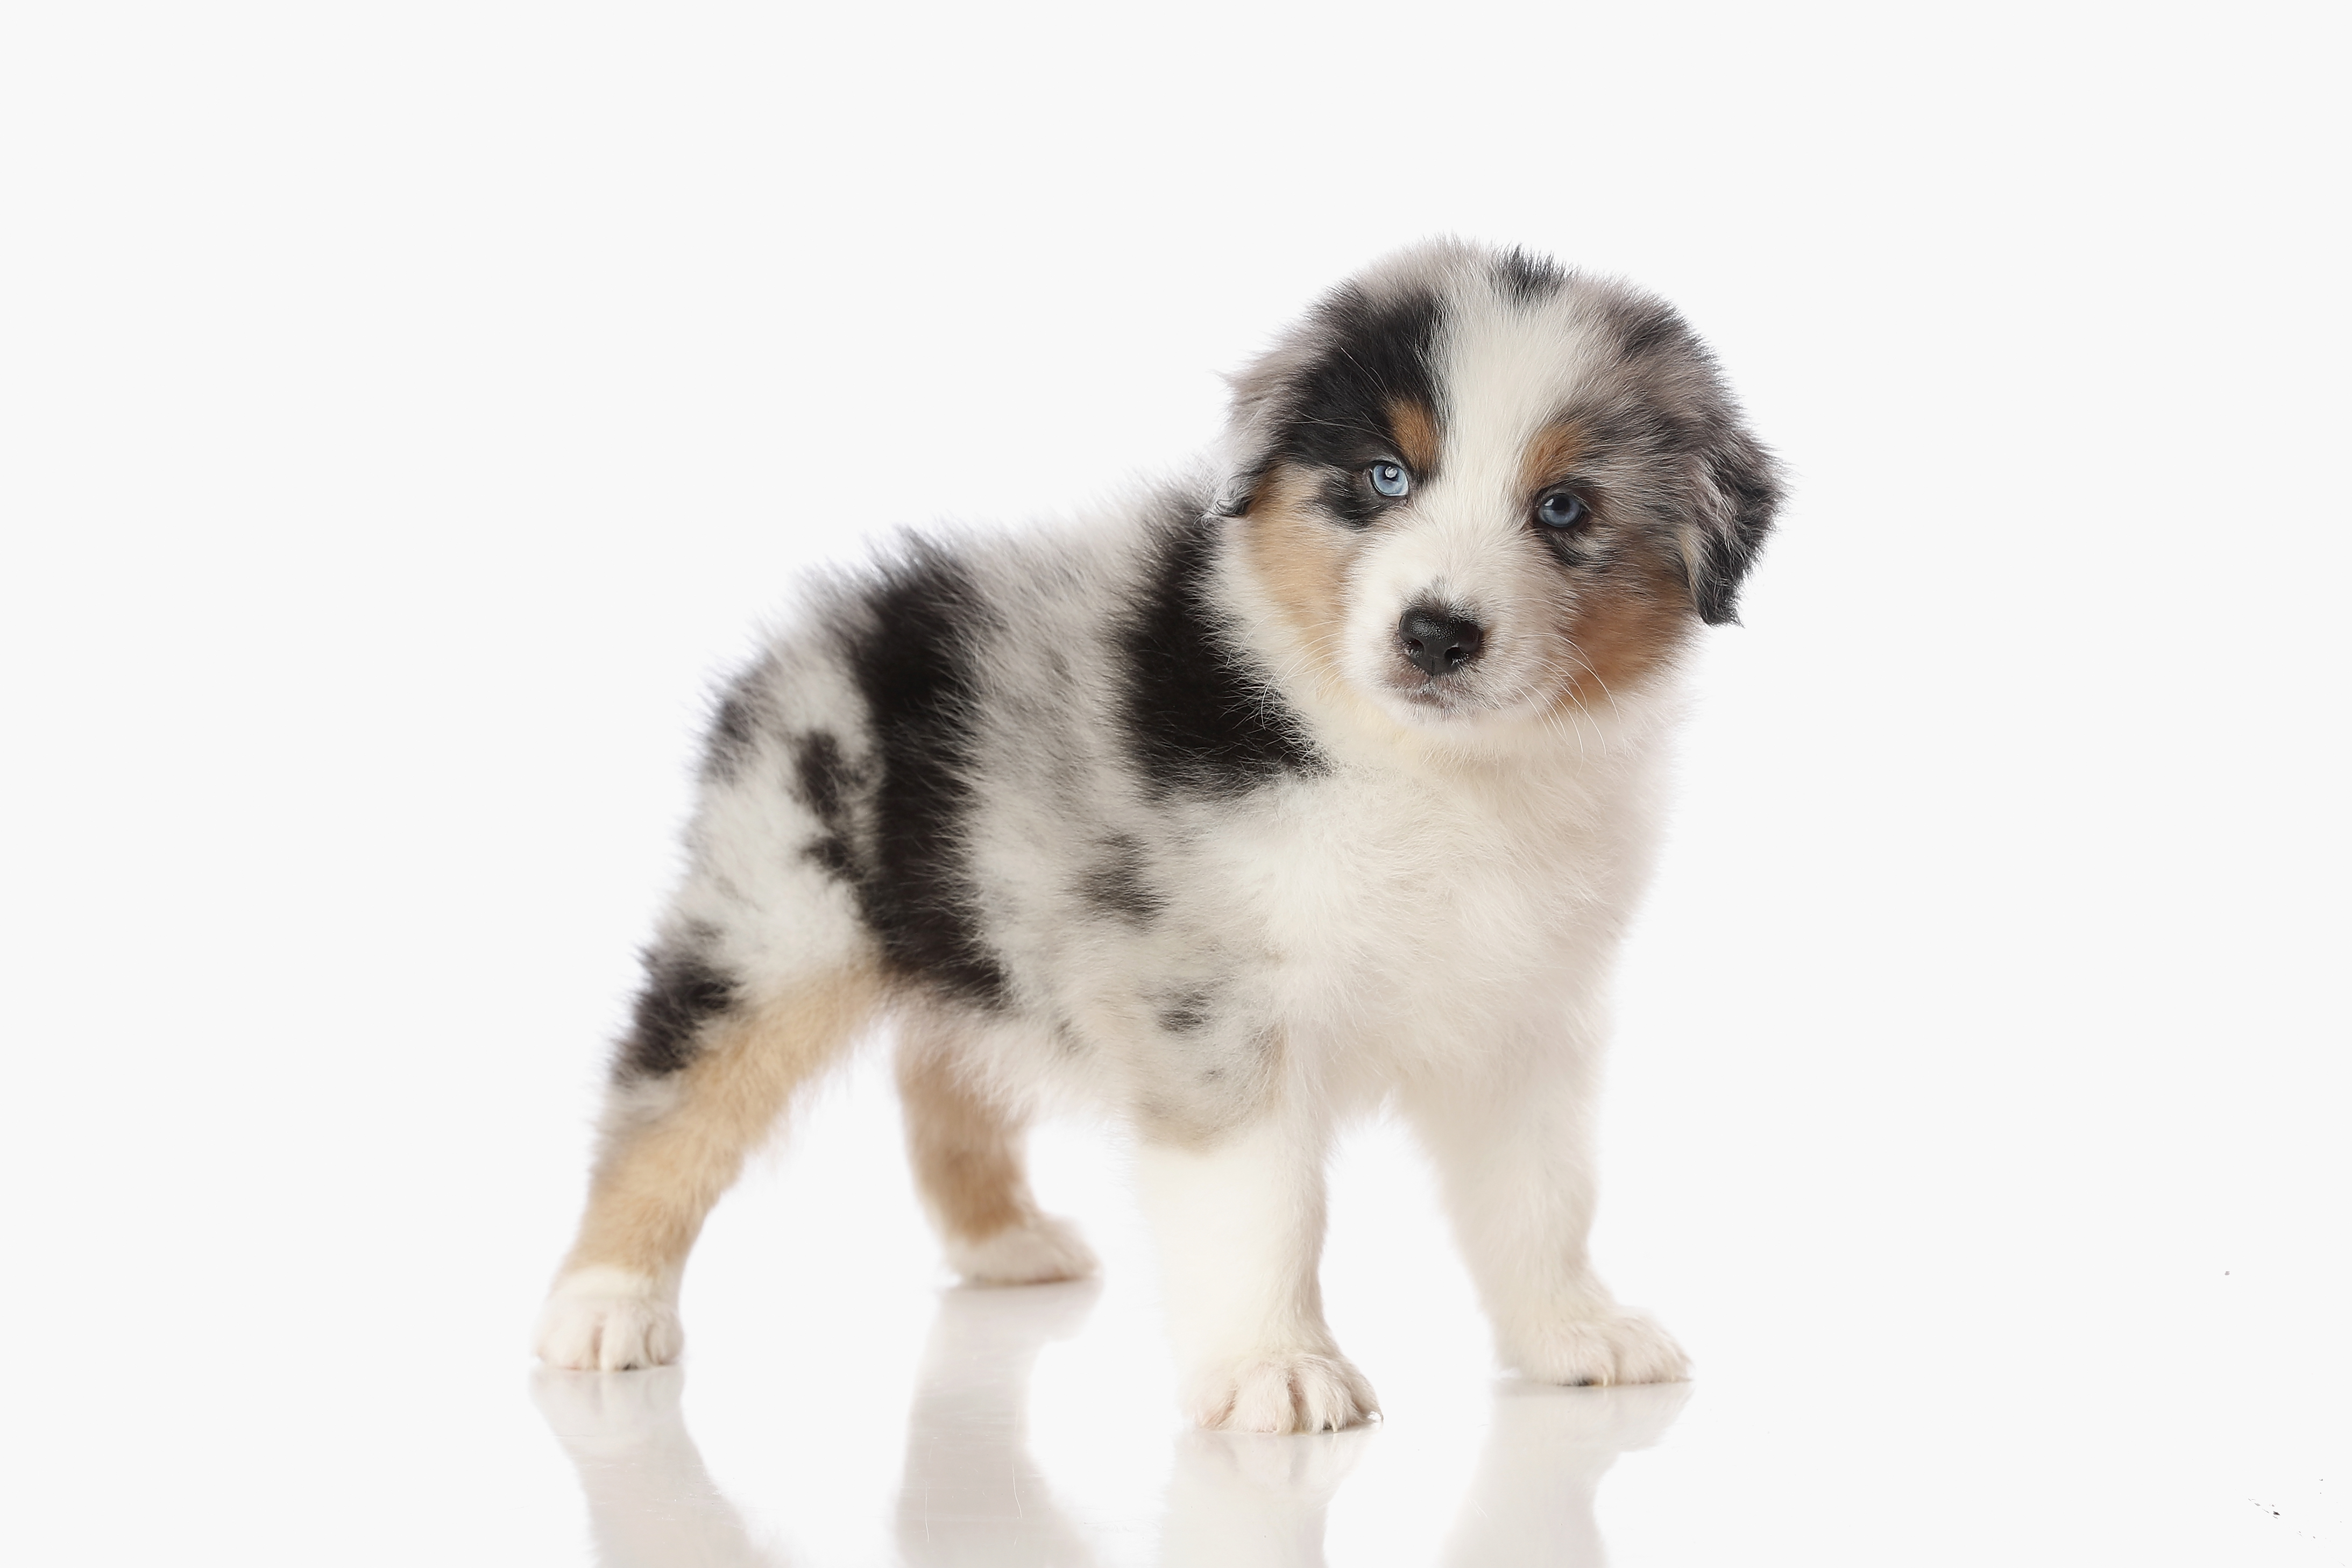 Red Merle Male Australian Shepherd Puppy #1 1 day